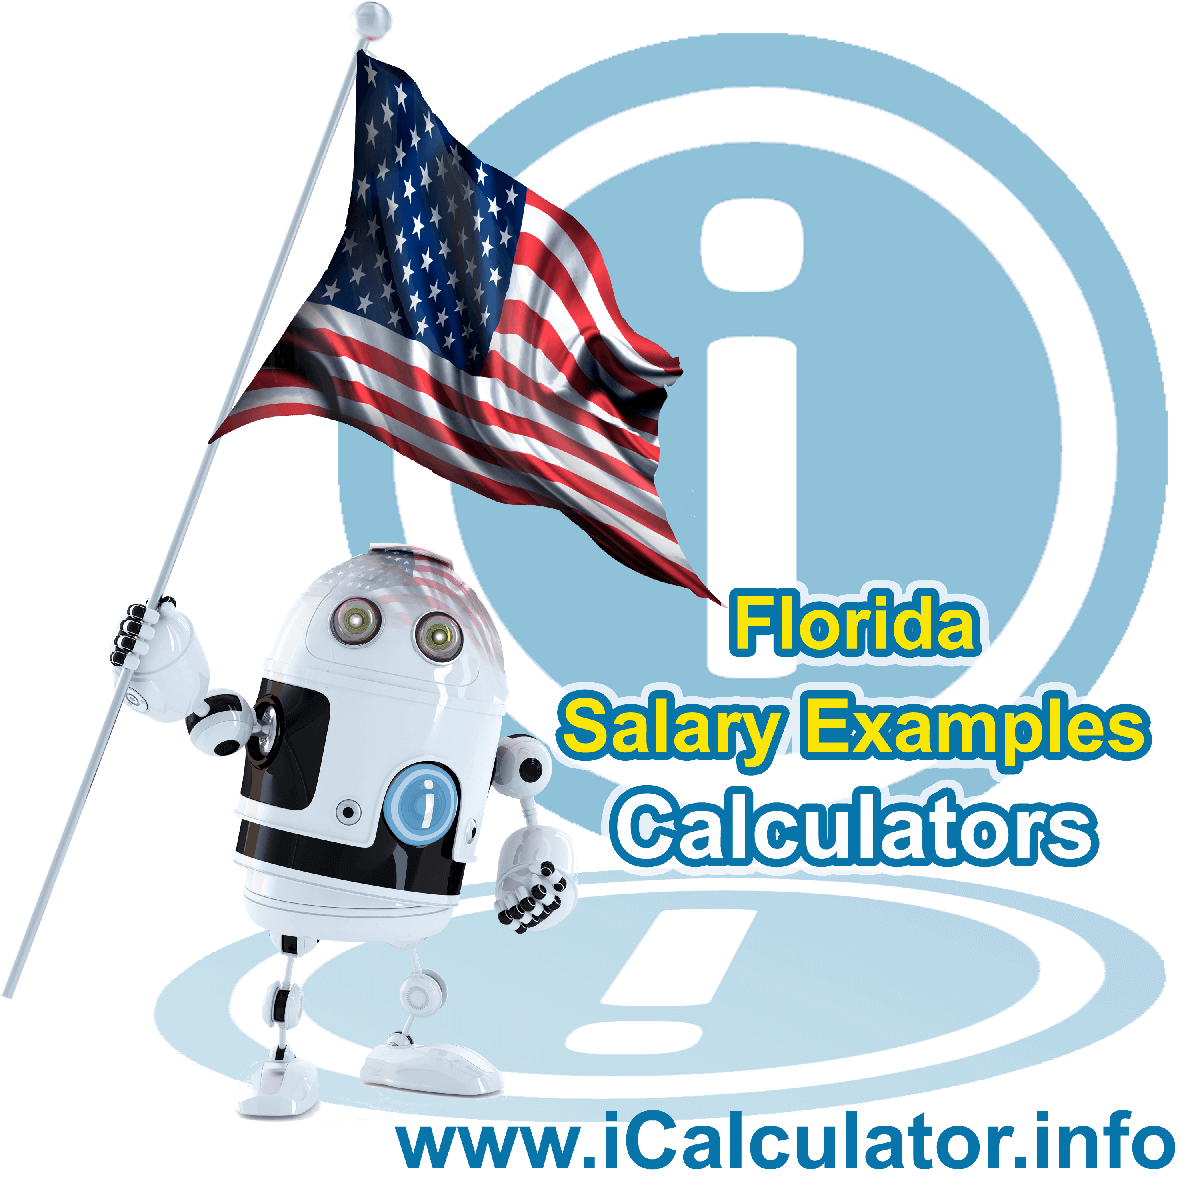 Florida Salary Example for $90.00 in 2021 | iCalculator | $90.00 salary example for employee and employer paying Florida State tincome taxes. Detailed salary after tax calculation including Florida State Tax, Federal State Tax, Medicare Deductions, Social Security, Capital Gains and other income tax and salary deductions complete with supporting Florida state tax tables